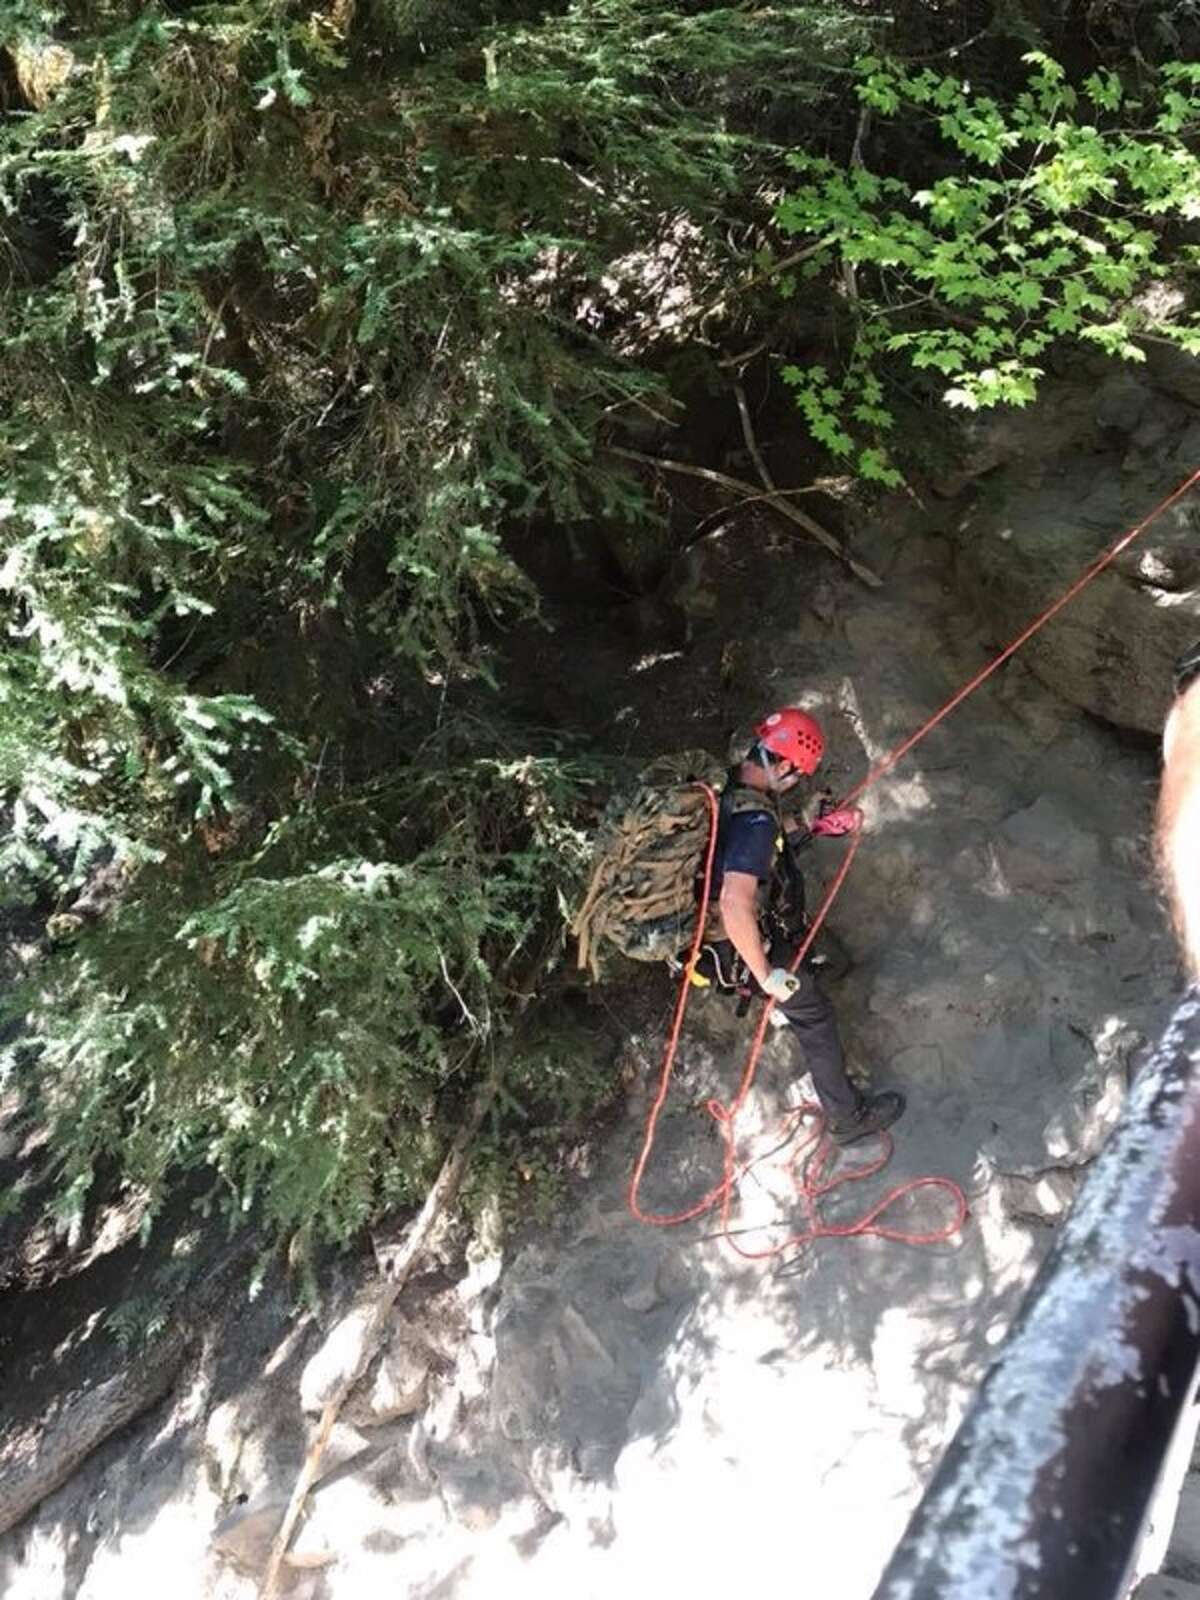 Douglas County, Oregon search and rescue personnel search for Brian Lewinstein, 23, of Berkeley, Calif. at Toketee Falls. Lewinstein